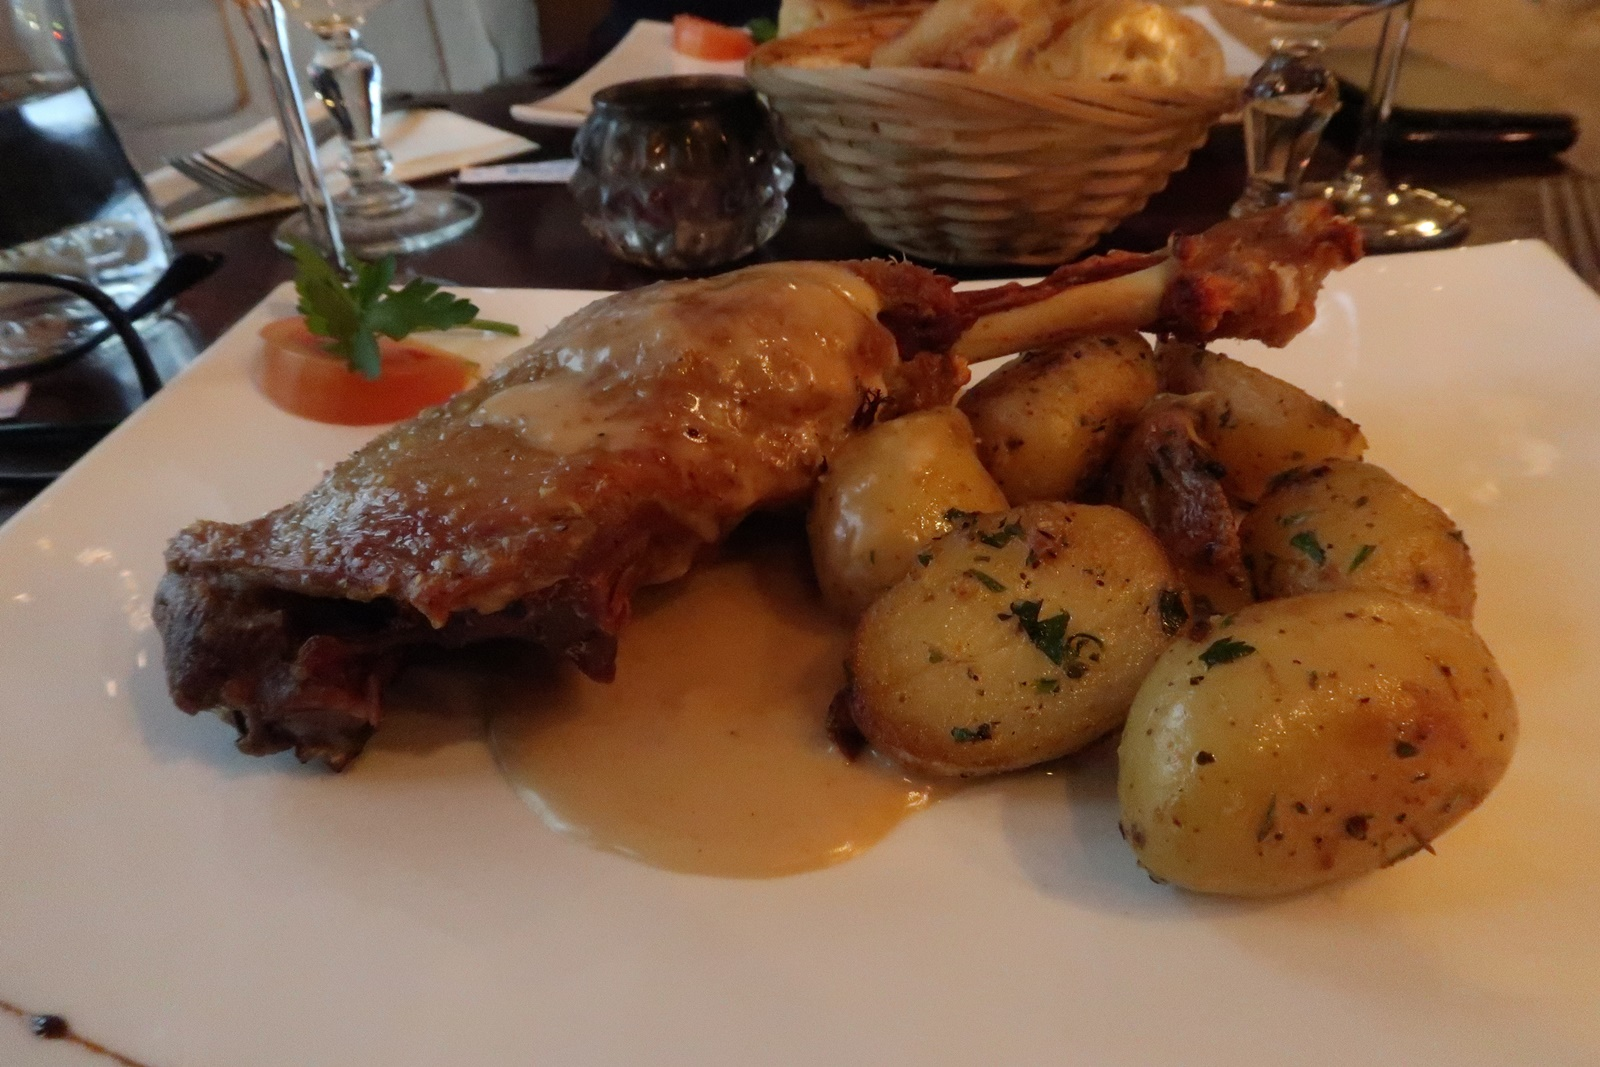 confit de canard french food traditional lunch menu